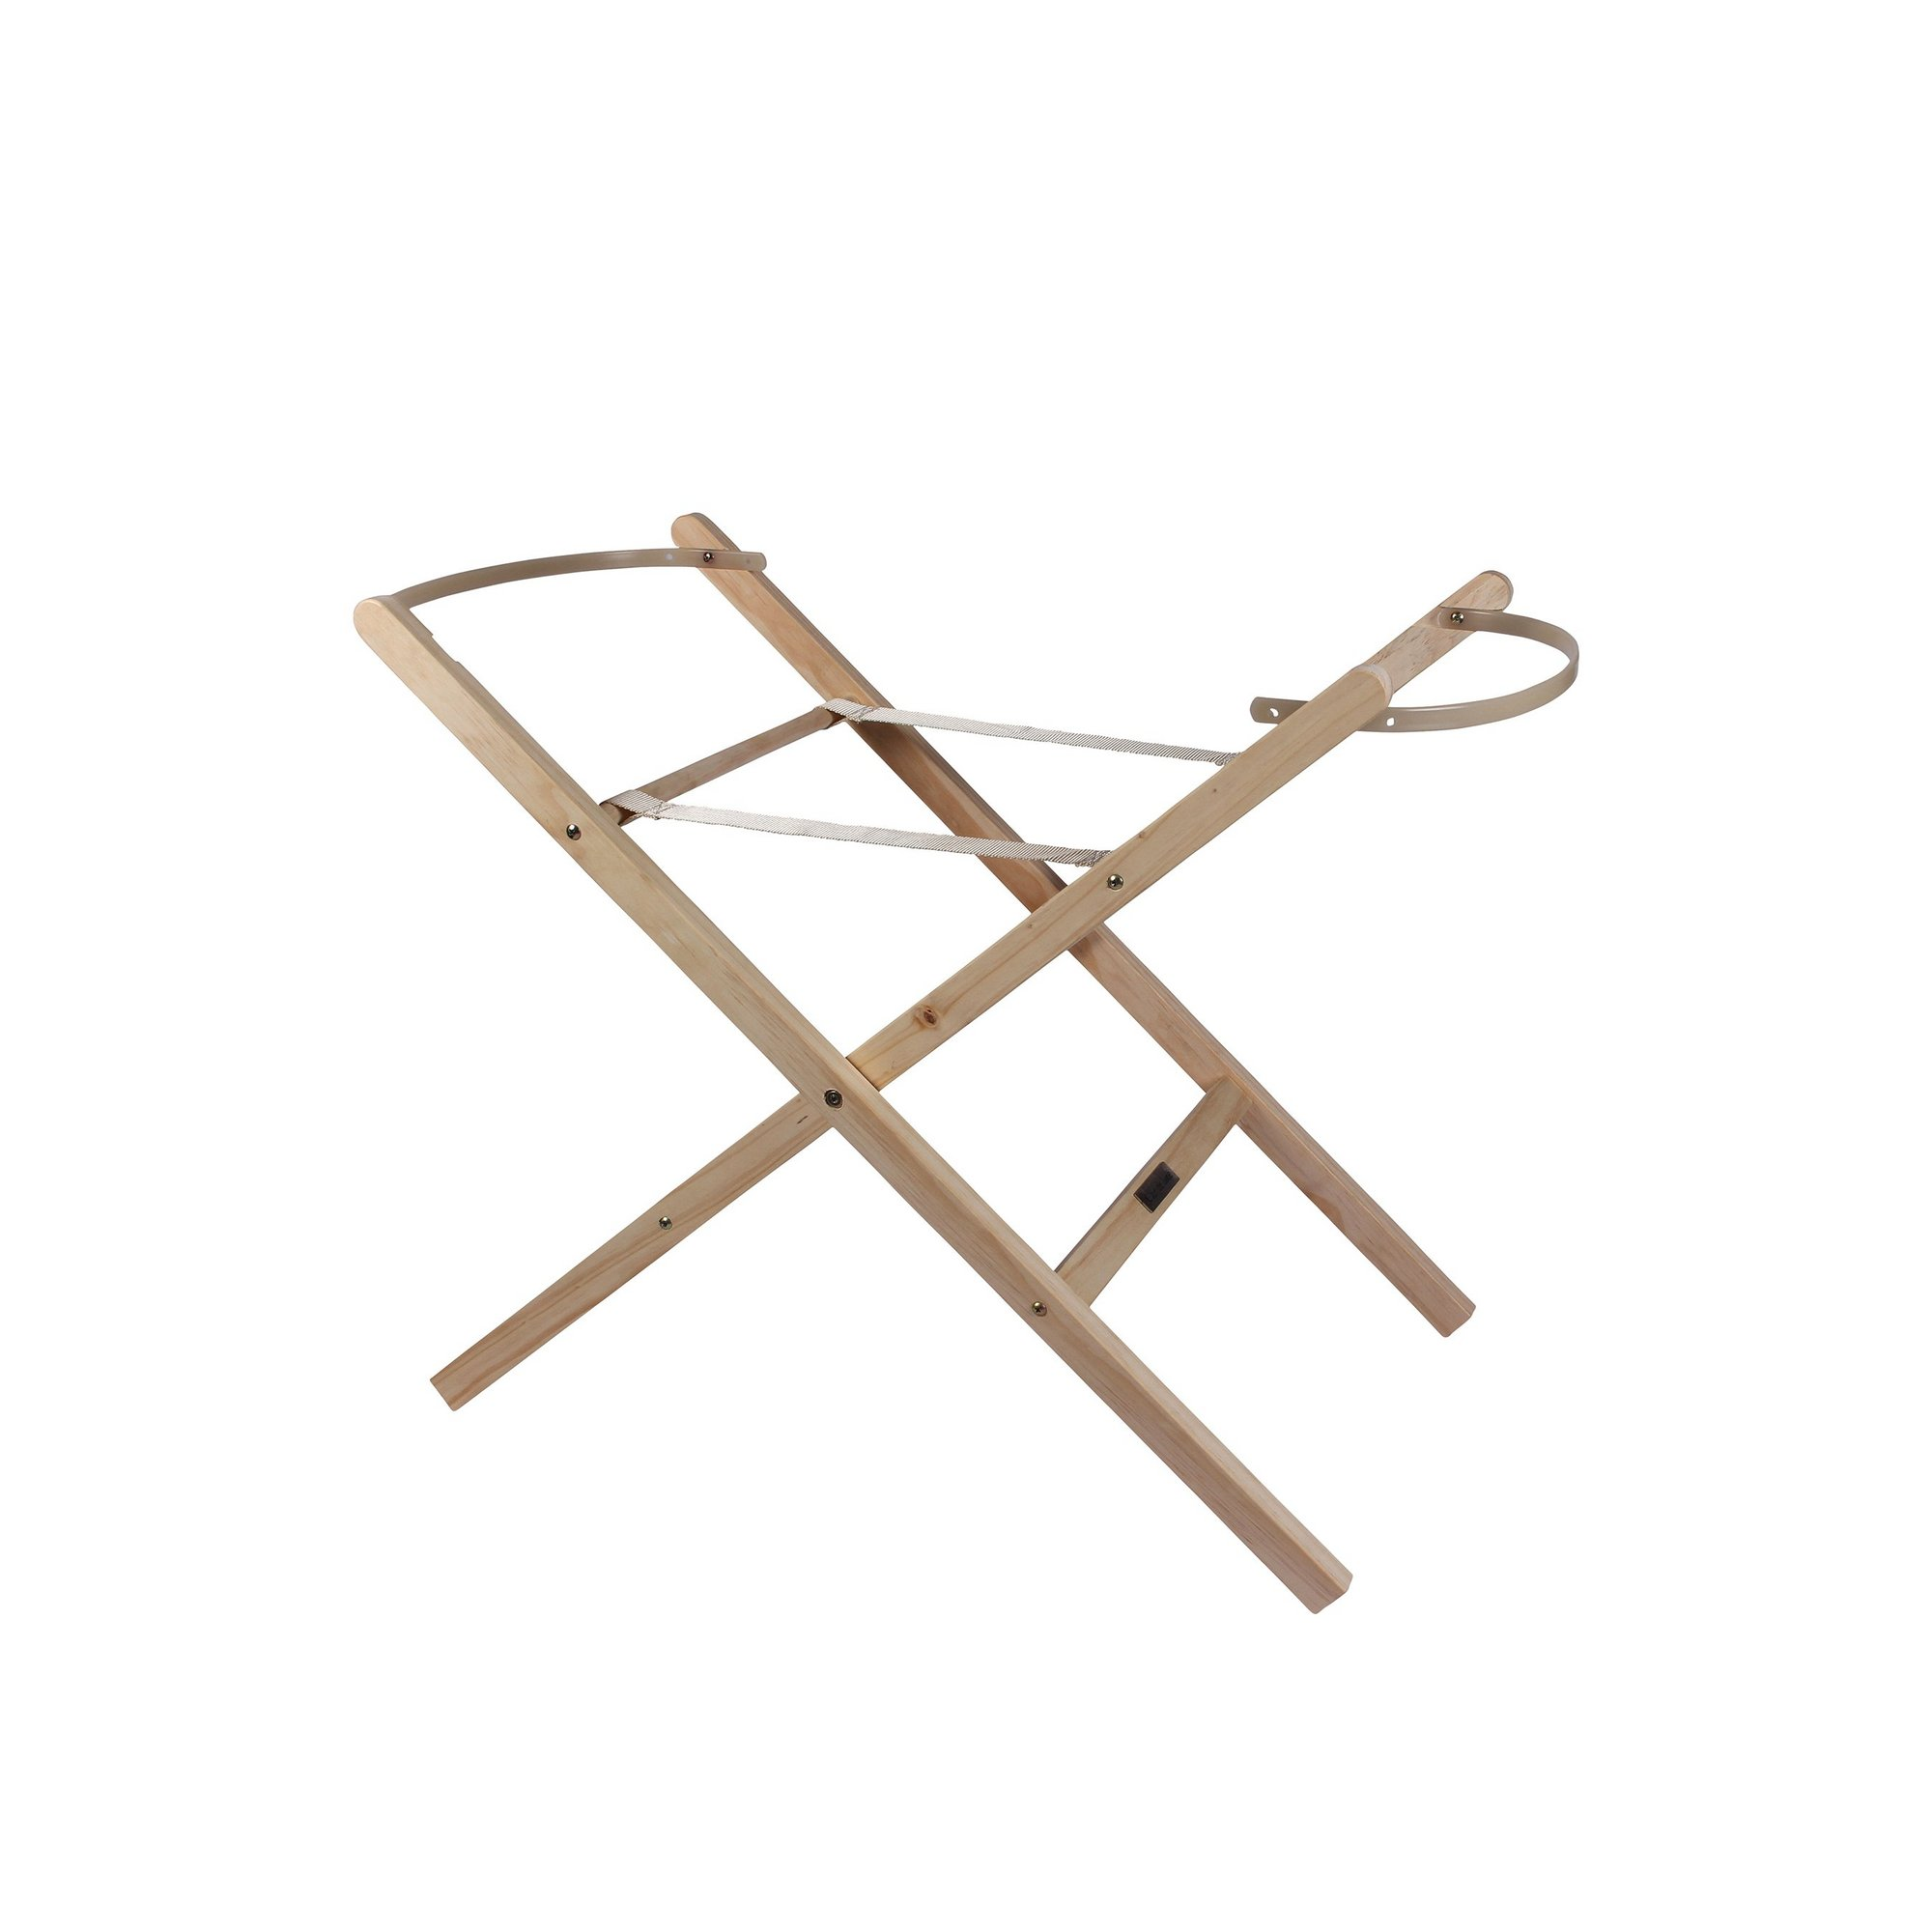 Image of Clair de Lune Folding Wooden Stand